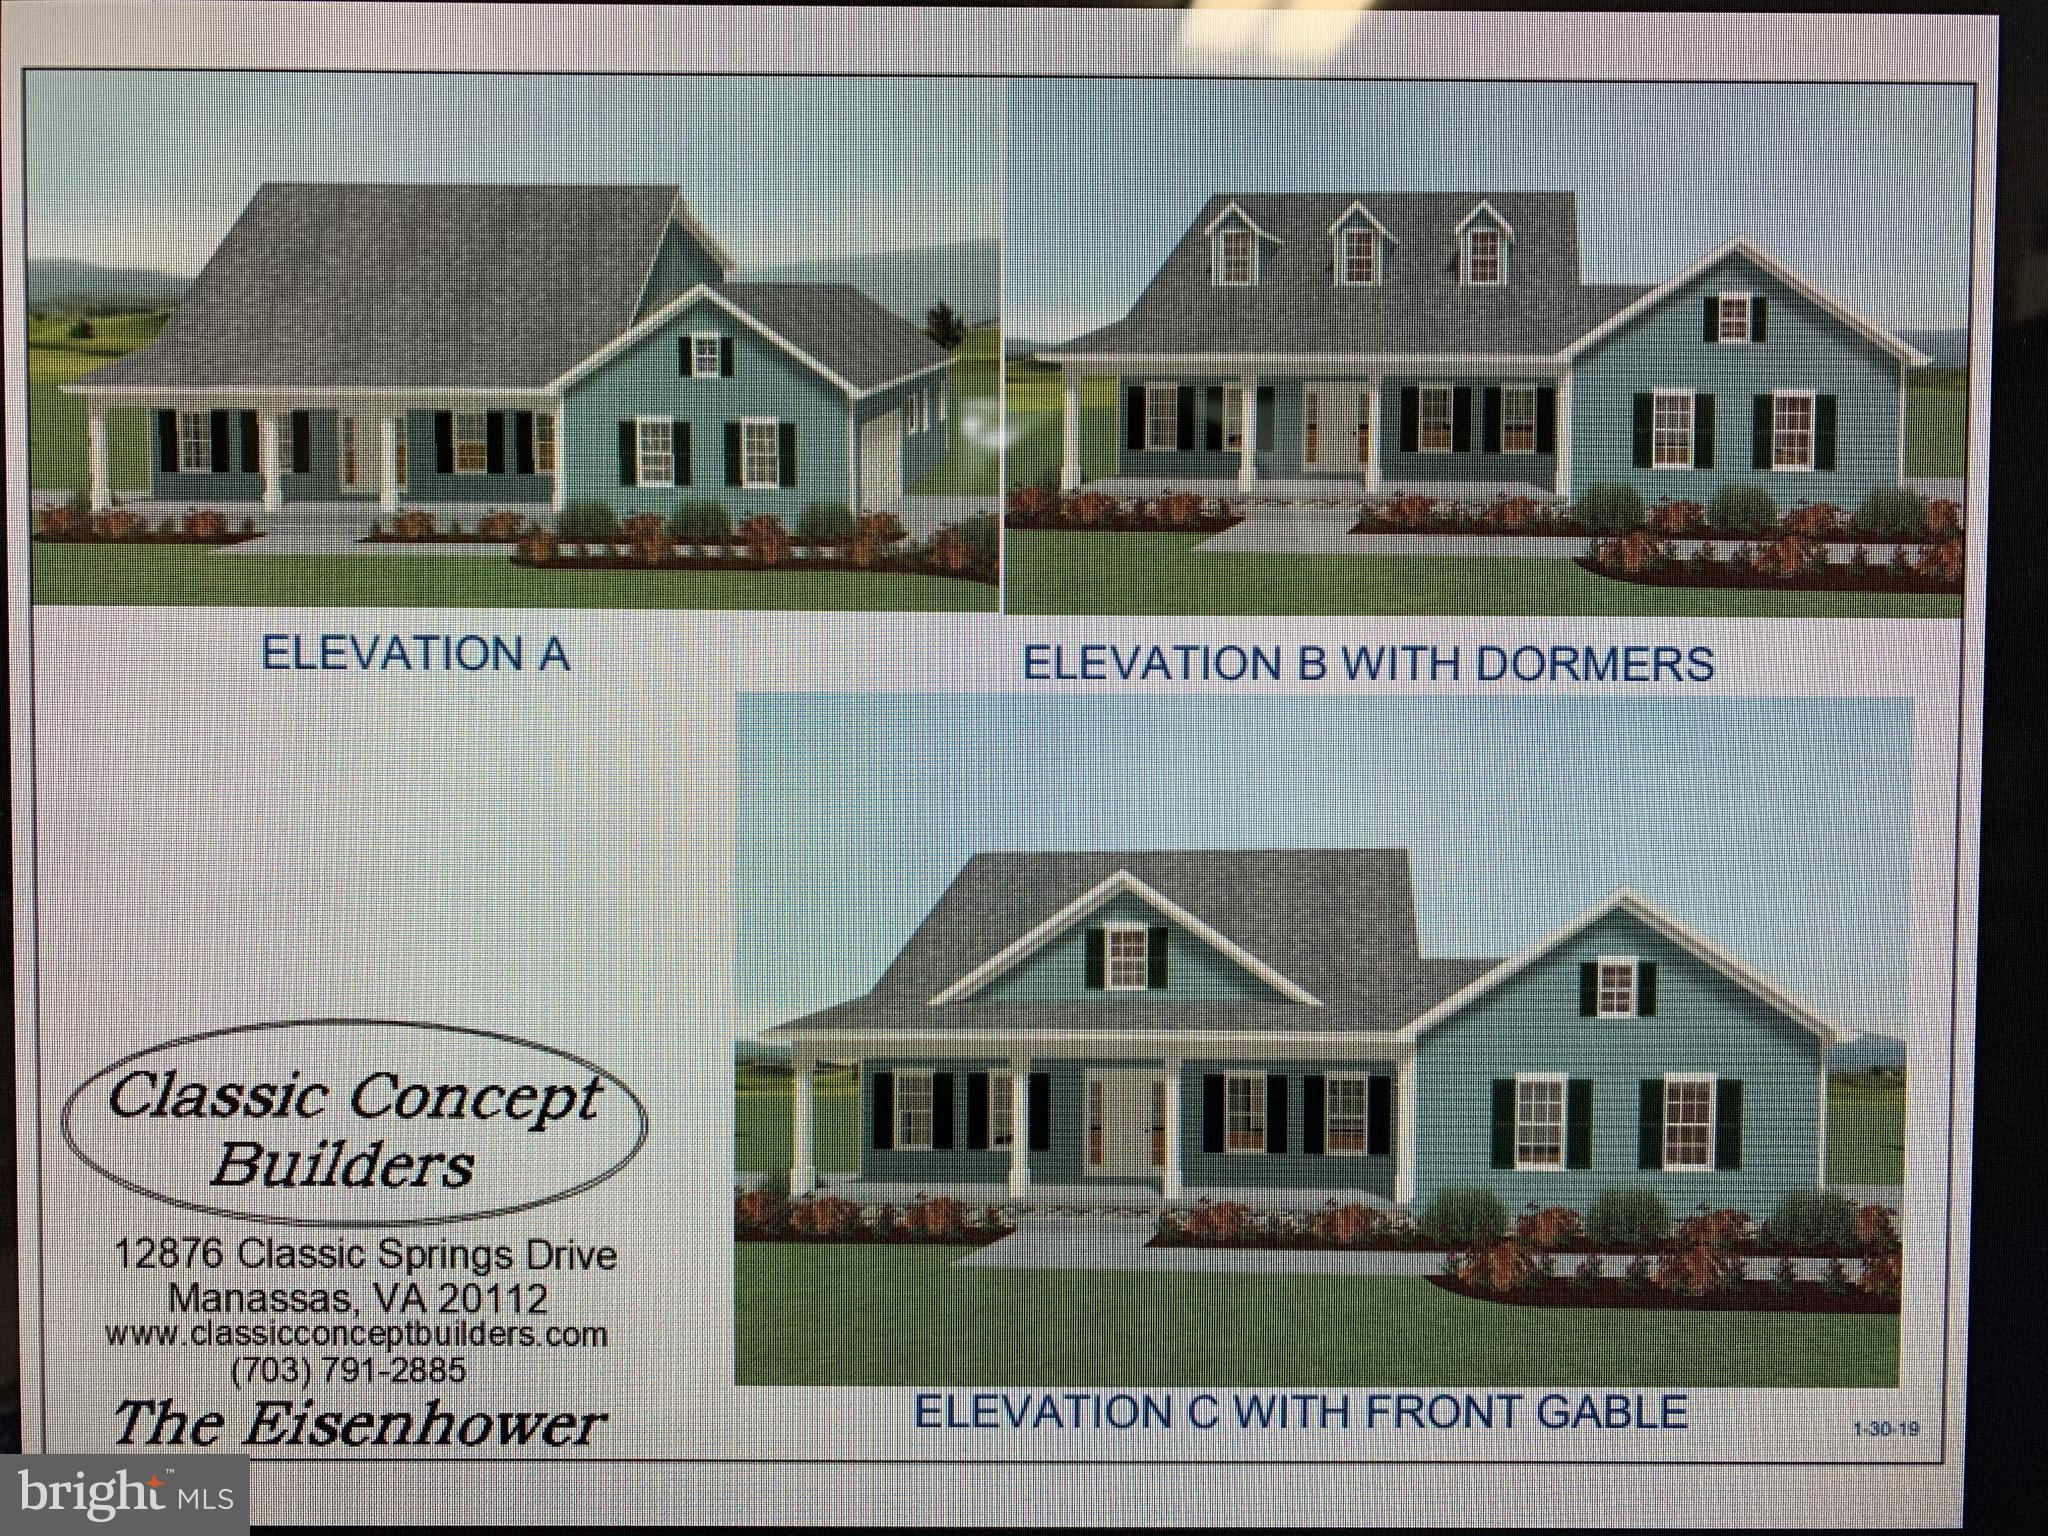 ***GREAT OPPORTUNITY TO BUILD WITH AWARD WINNING CLASSIC CONCEPT BUILDERS***THIS HOME CAN BE TOTALLY